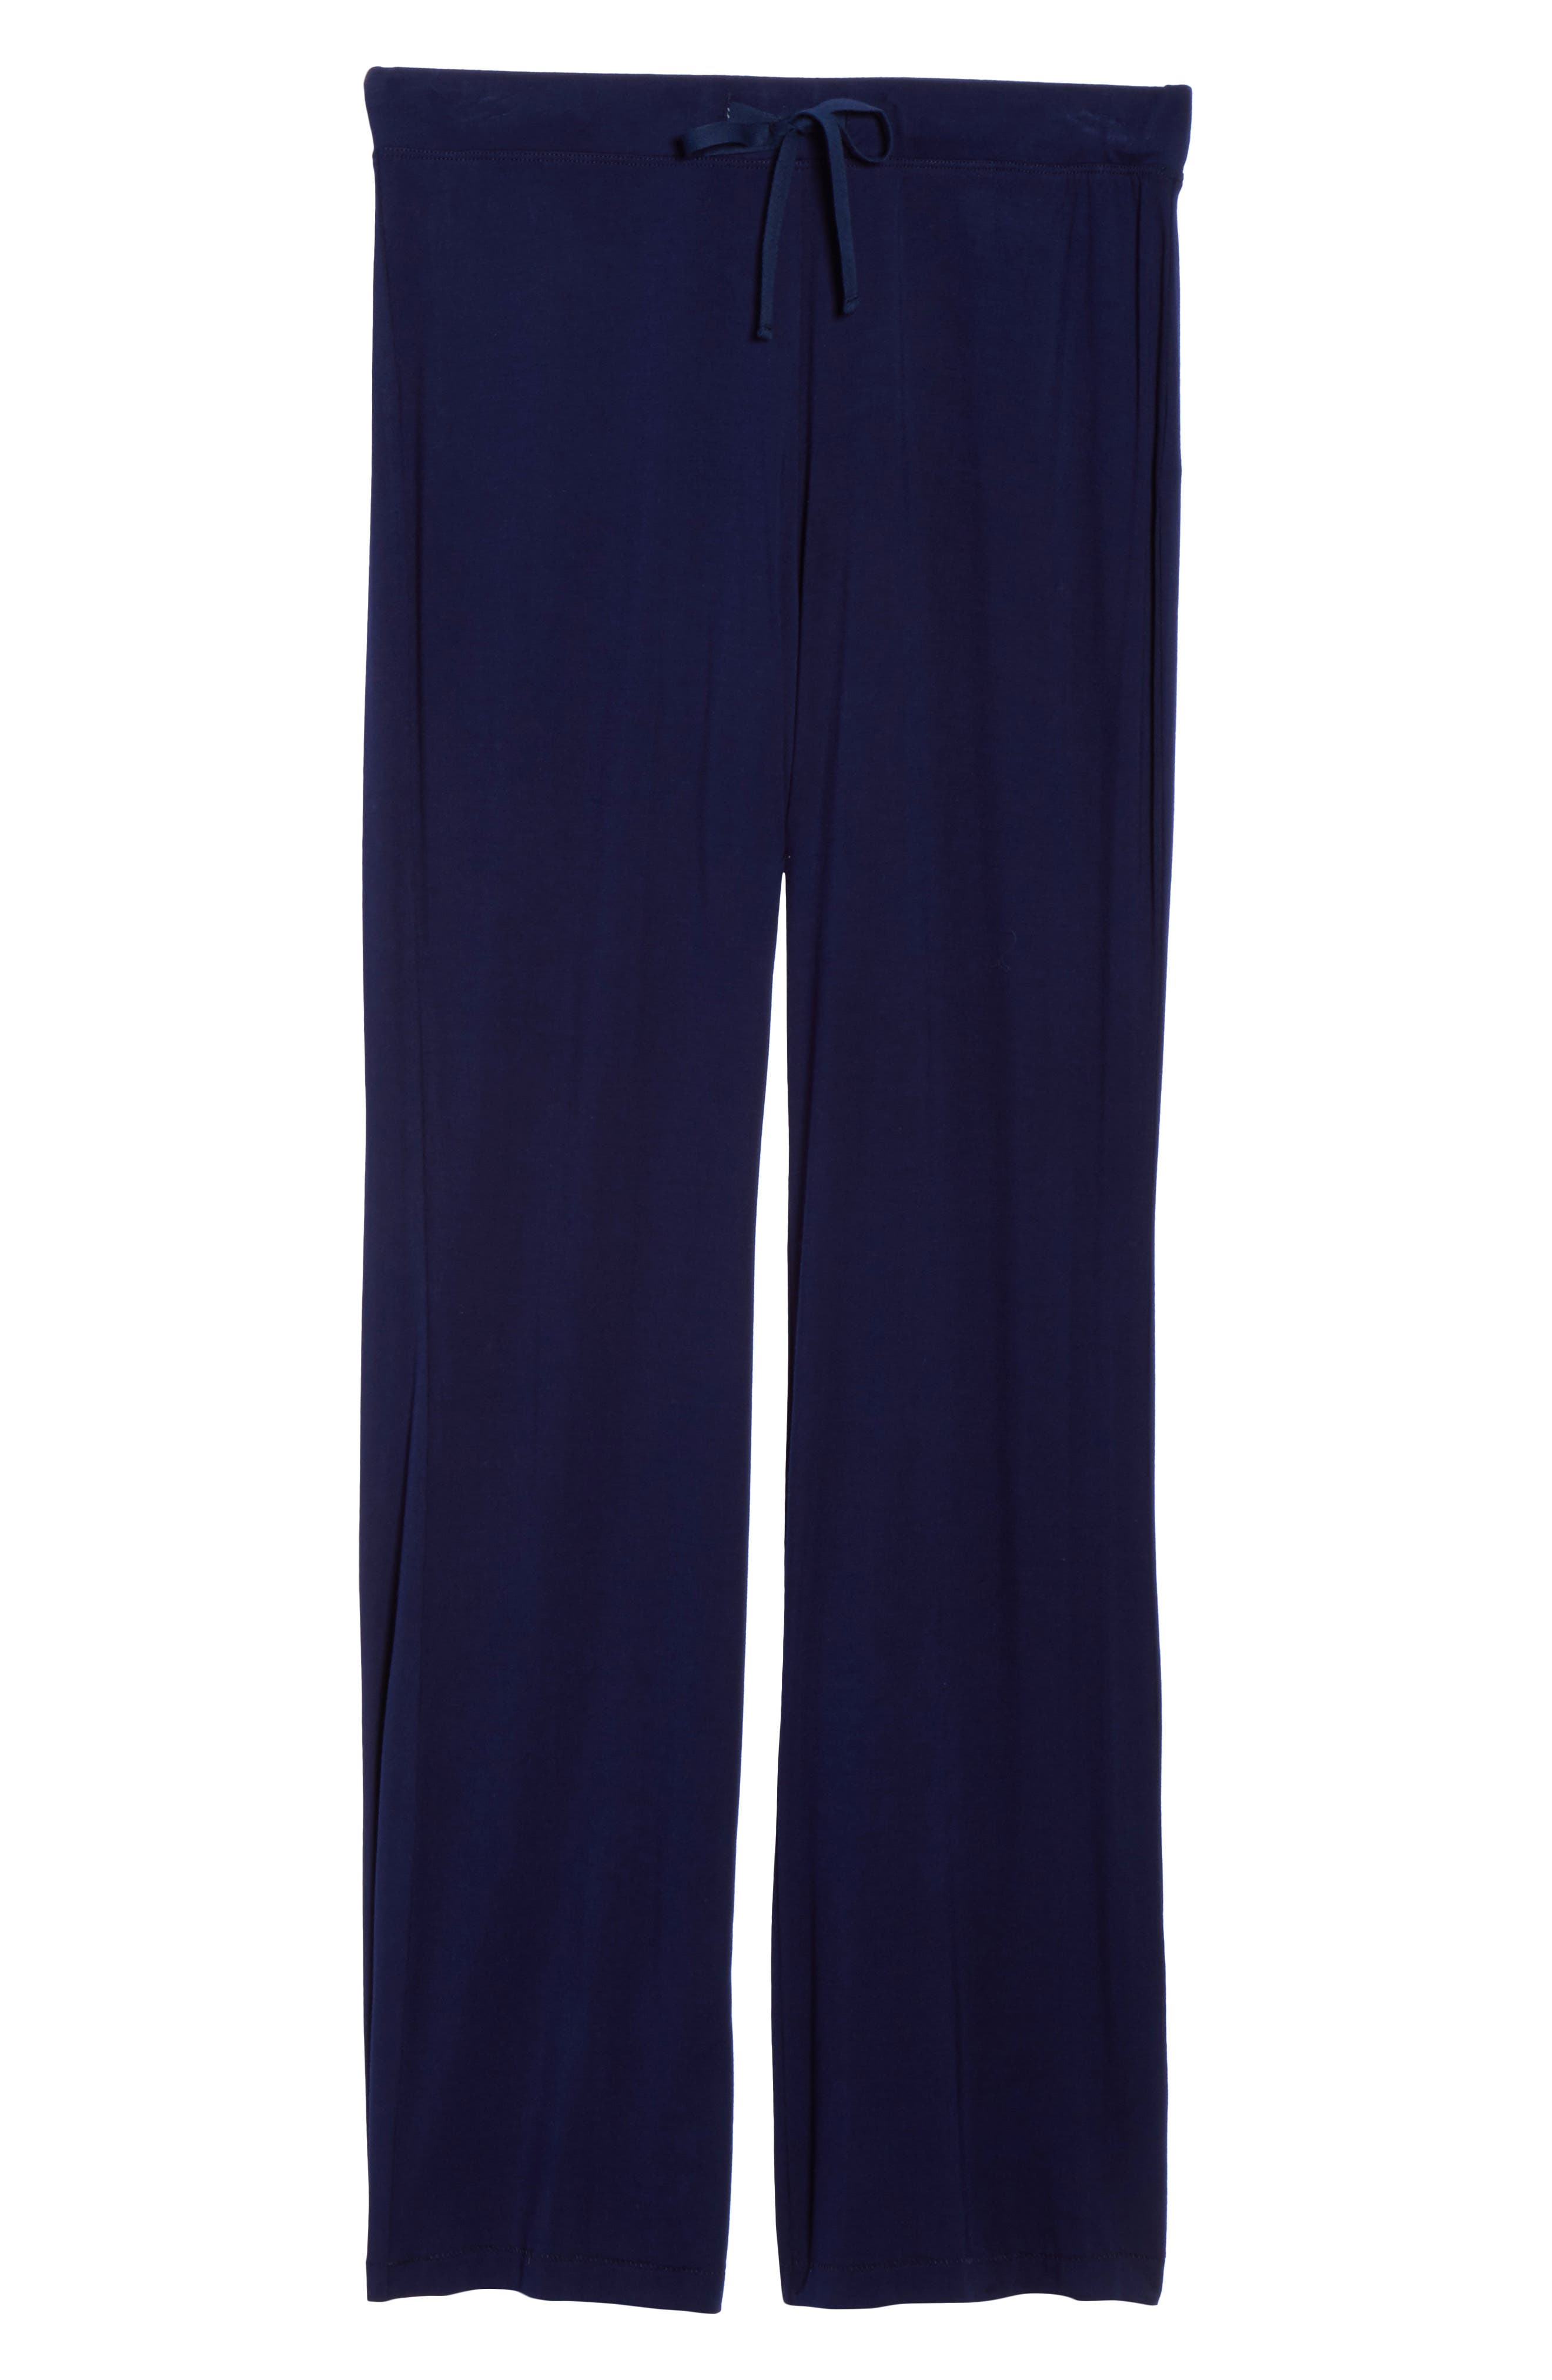 Polly Lounge Pants,                             Alternate thumbnail 6, color,                             400